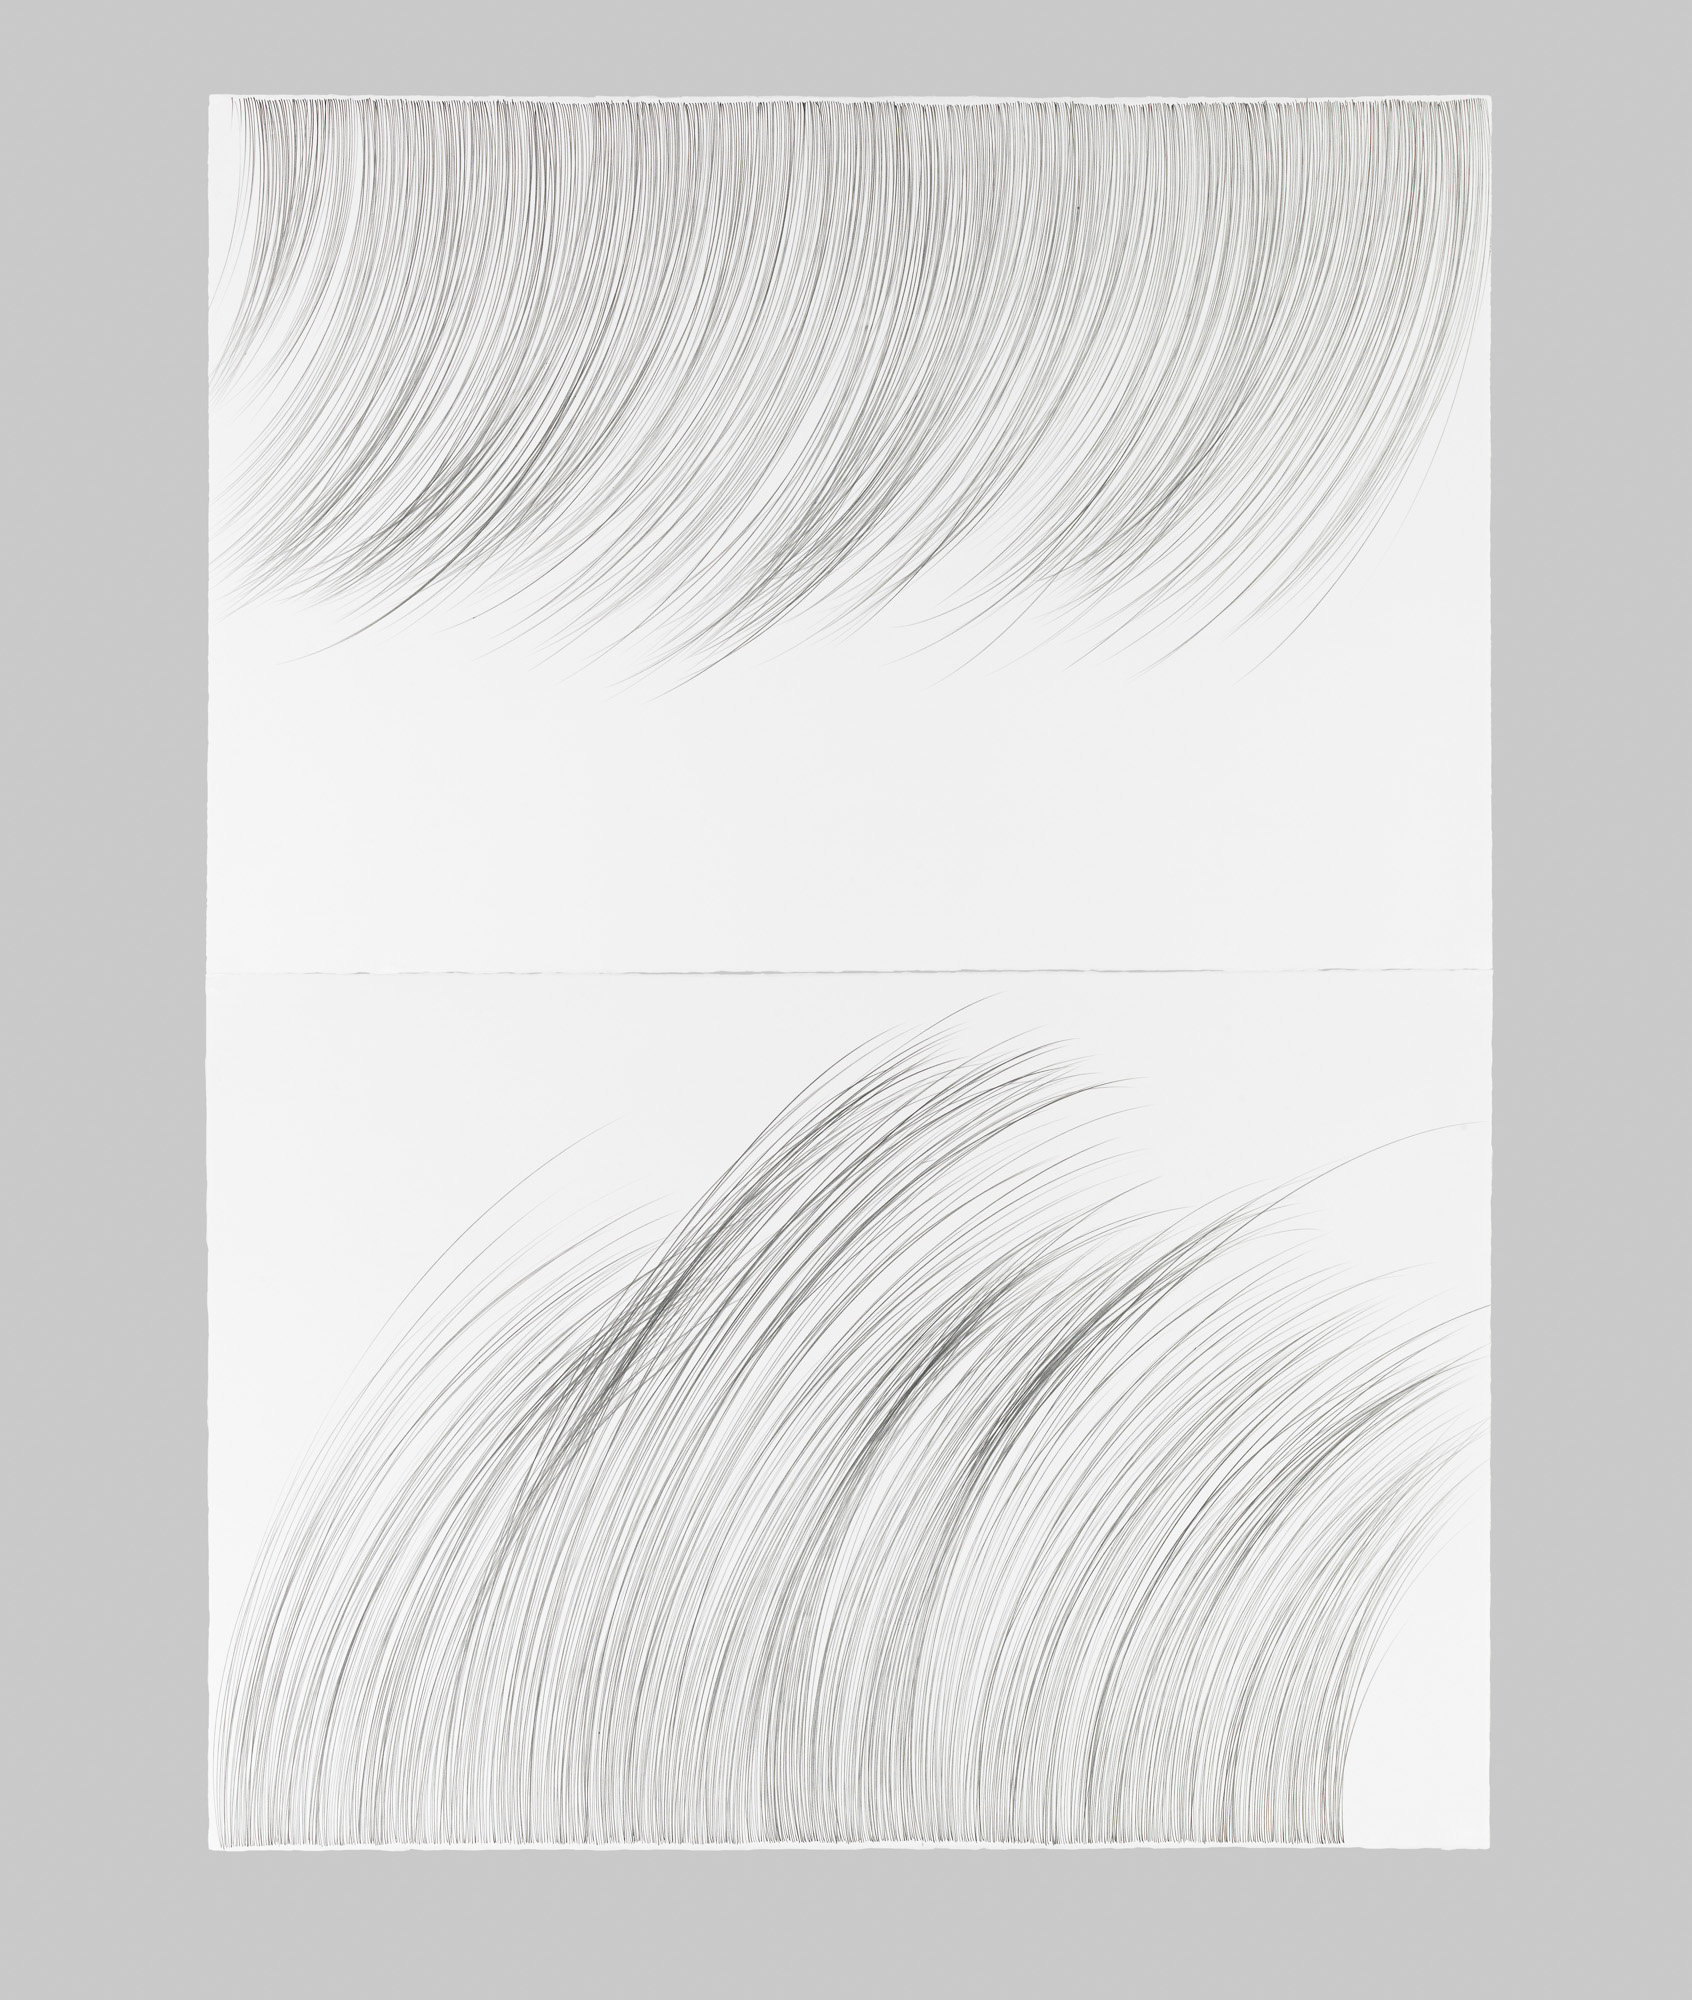 Large RainGrass, I   Graphite on cotton paper, 60 x 44 inches, diptych, 2015